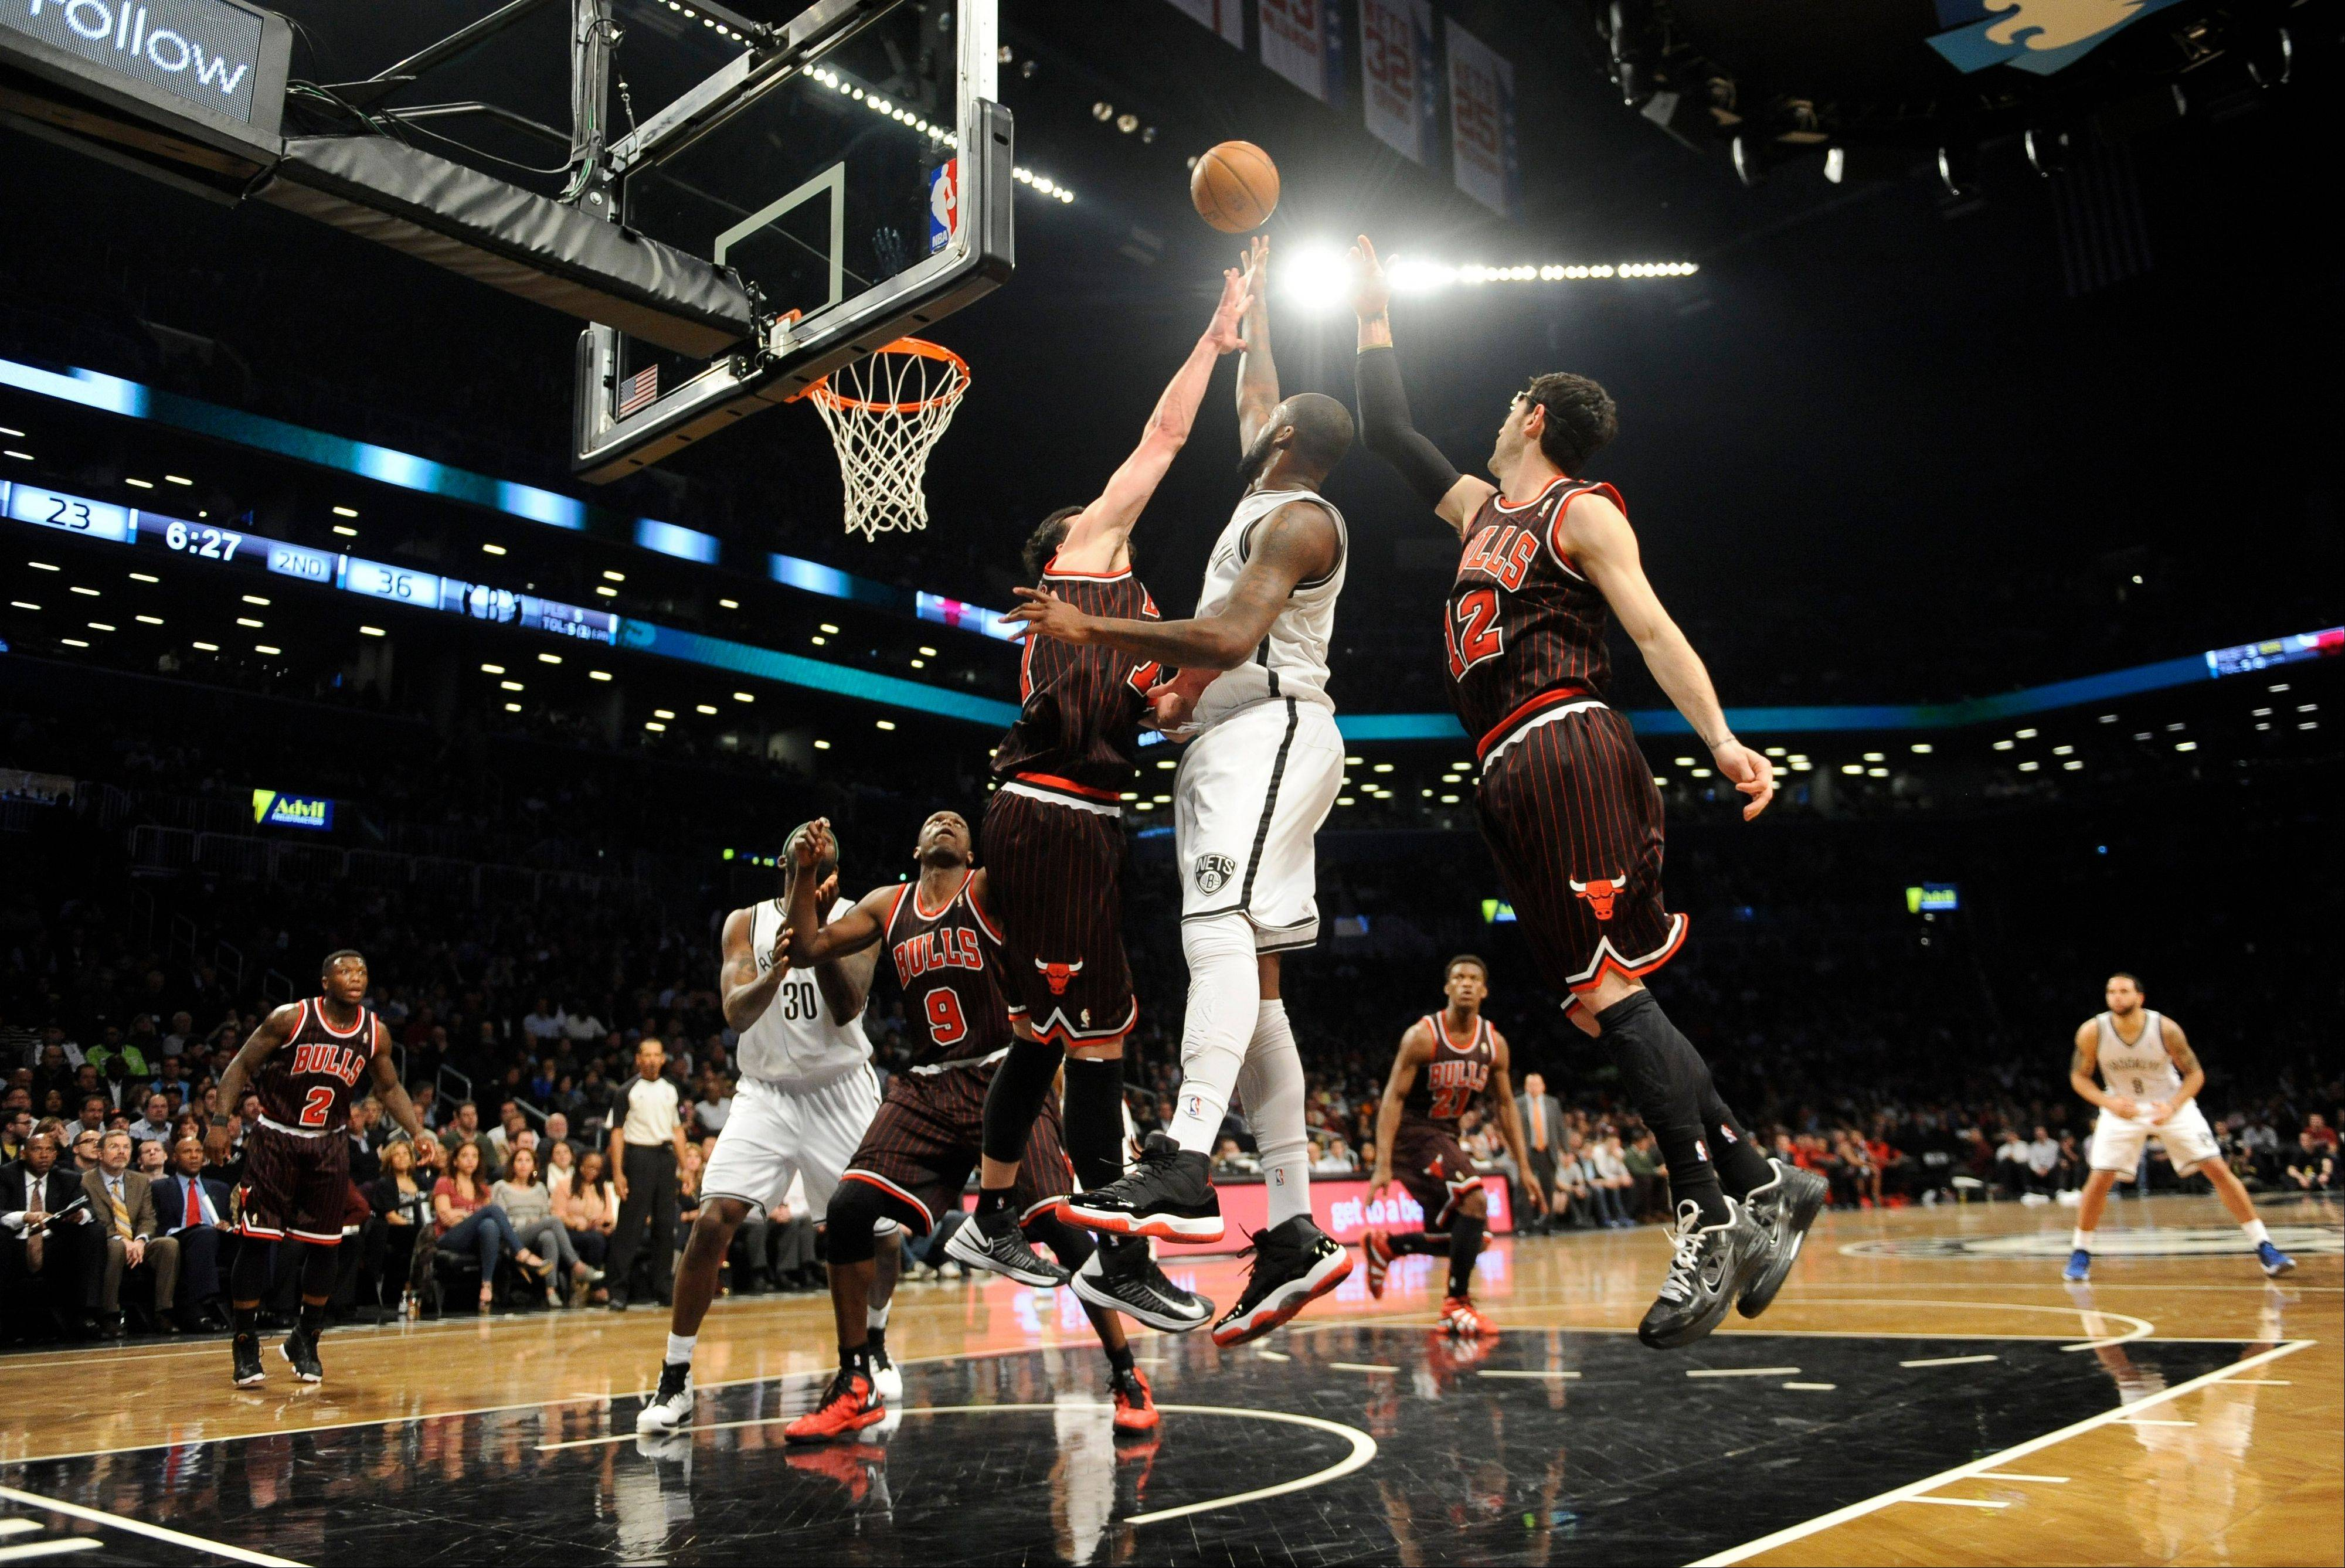 Brooklyn Nets' Andray Blatche (0) shoots between Chicago Bulls' Vladimir Radmanovic (77) and Kirk Hinrich (12) in the first half of an NBA basketball game on Thursday, April 4, 2013, at Barclays Center in New York. (AP Photo/Kathy Kmonicek)